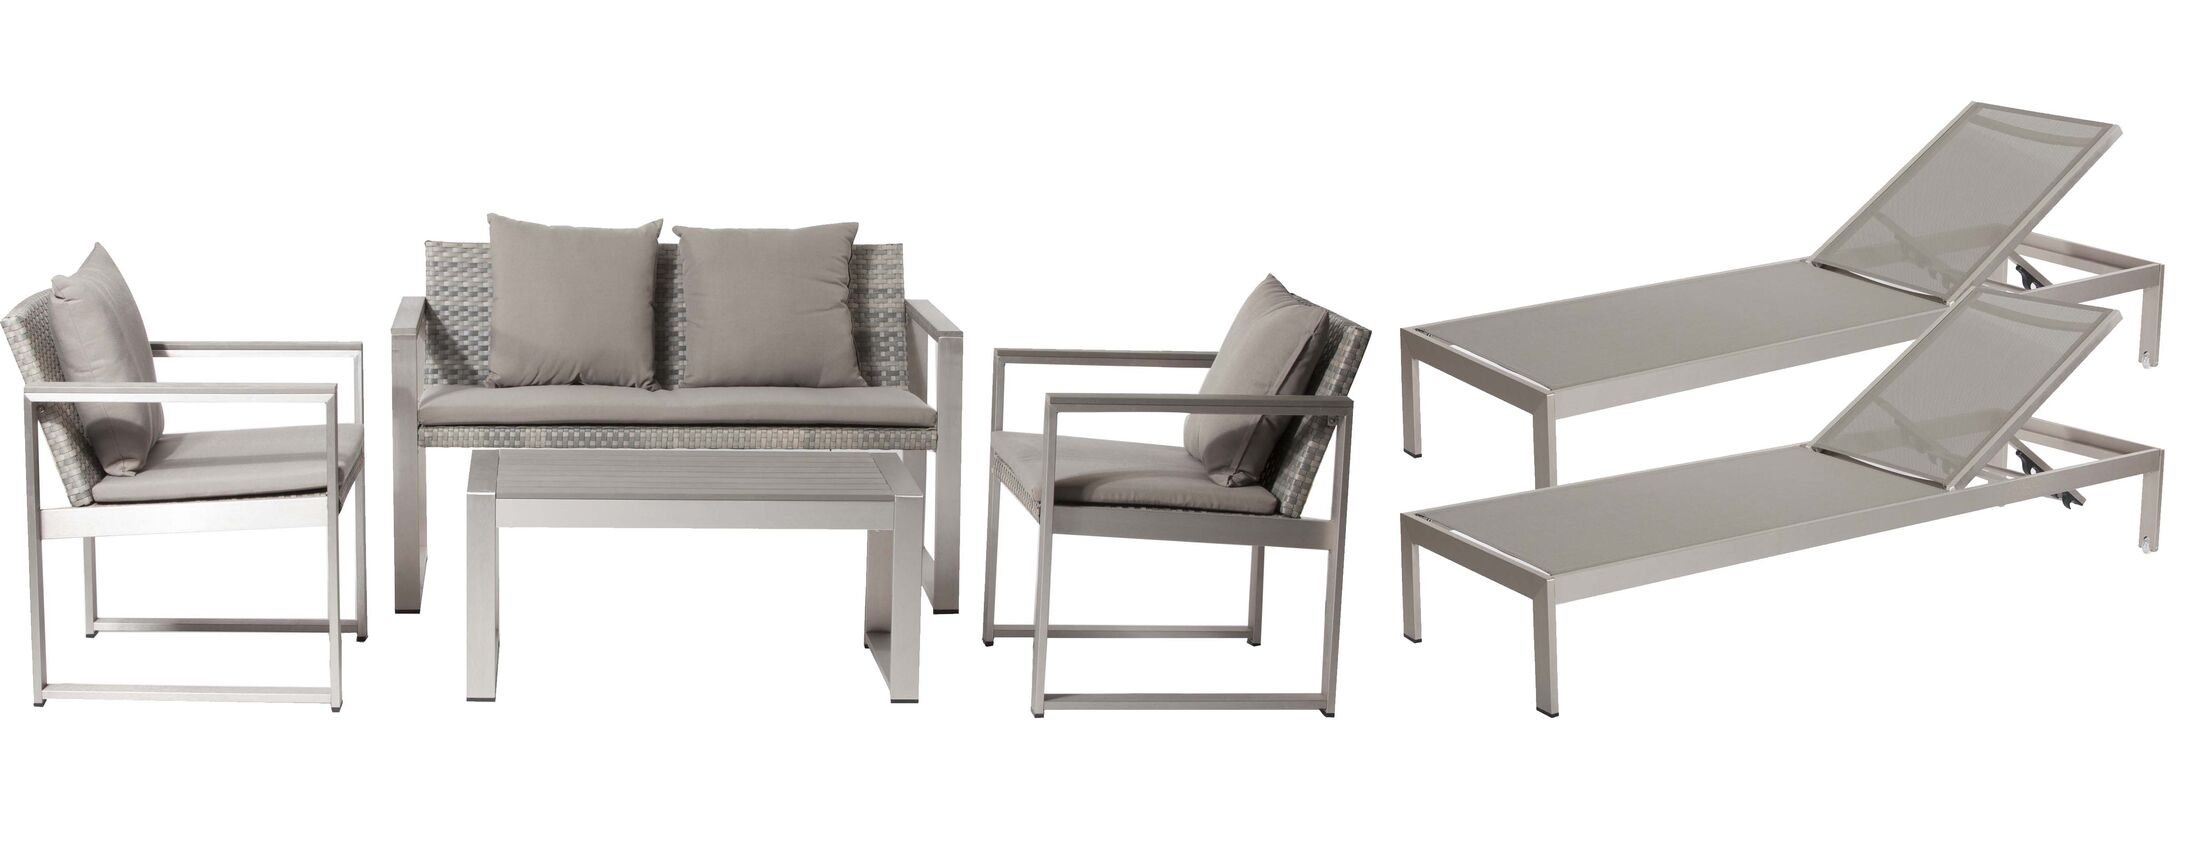 Hampshire 6 Piece Rattan Sofa Set with Cushions Frame Color: Gray, Cushion Color: Gray